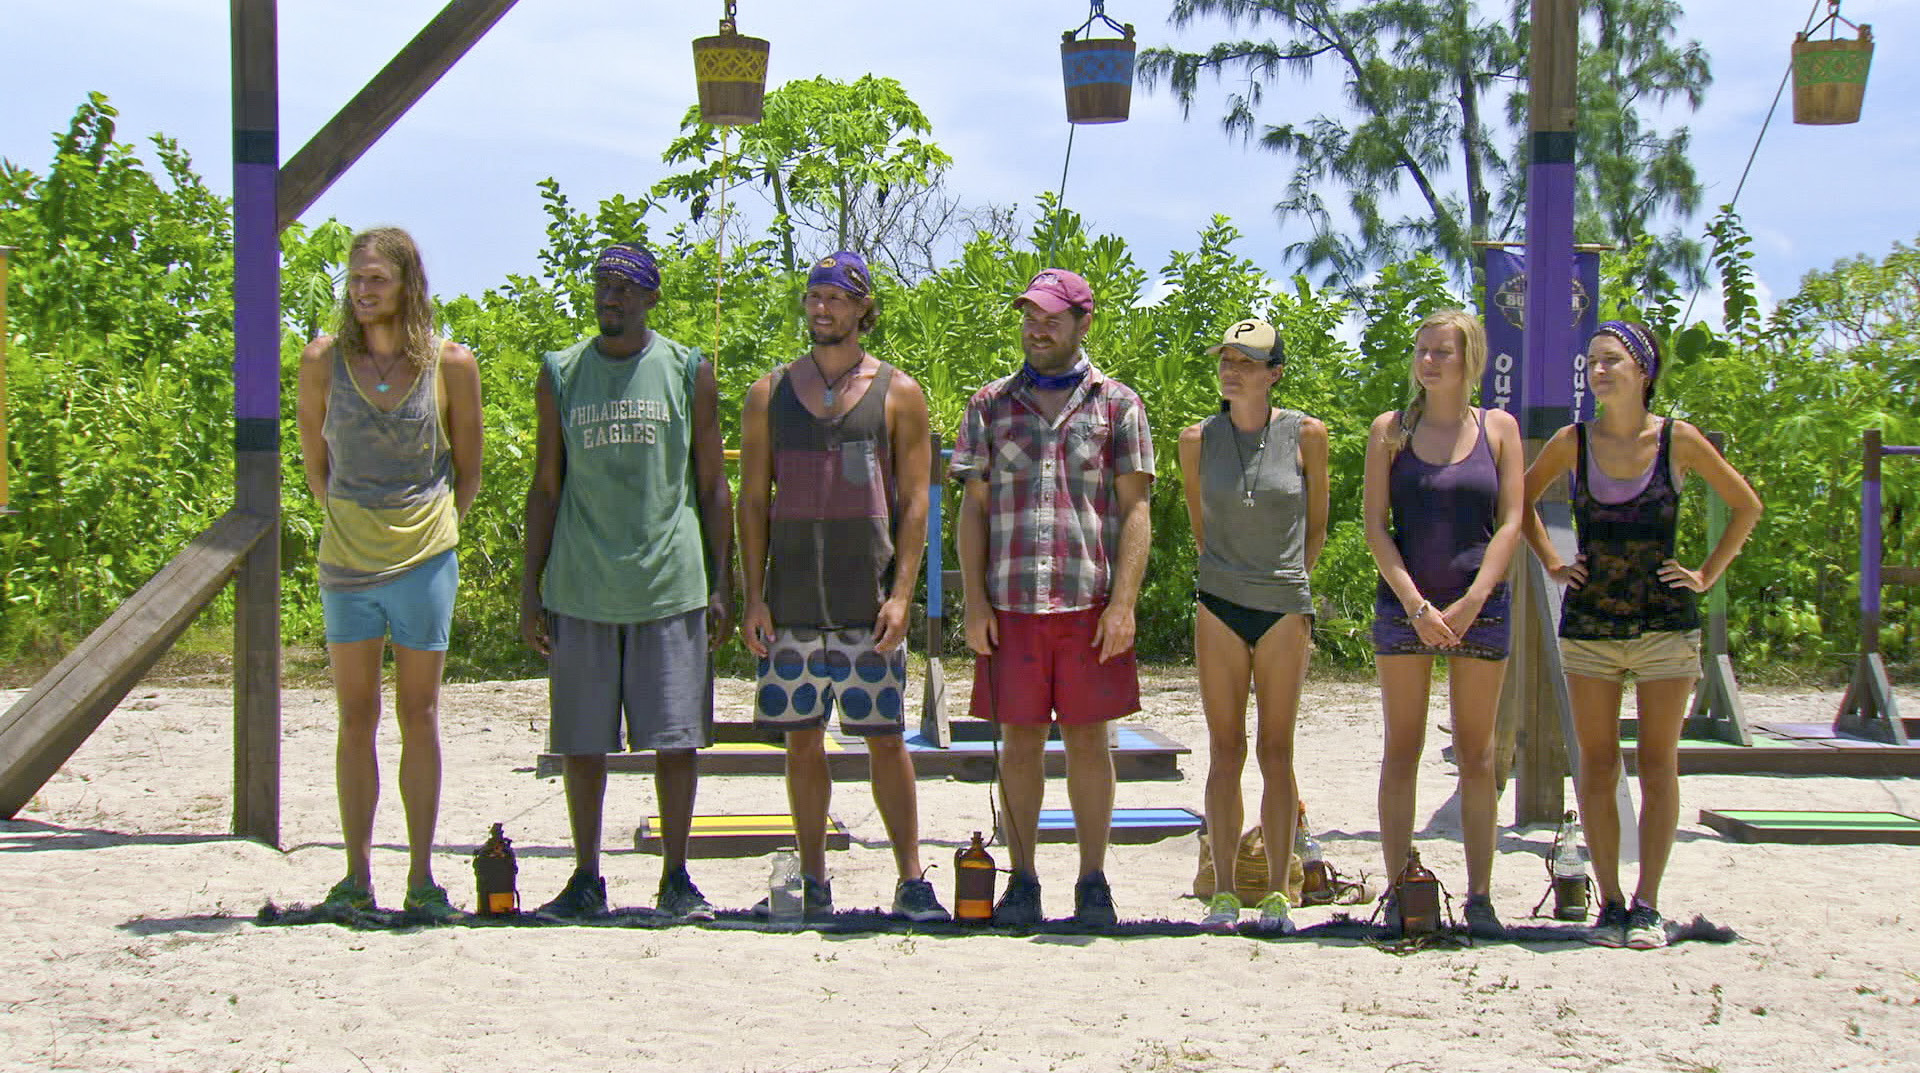 Lining up for Immunity in Season 27 Episode 11